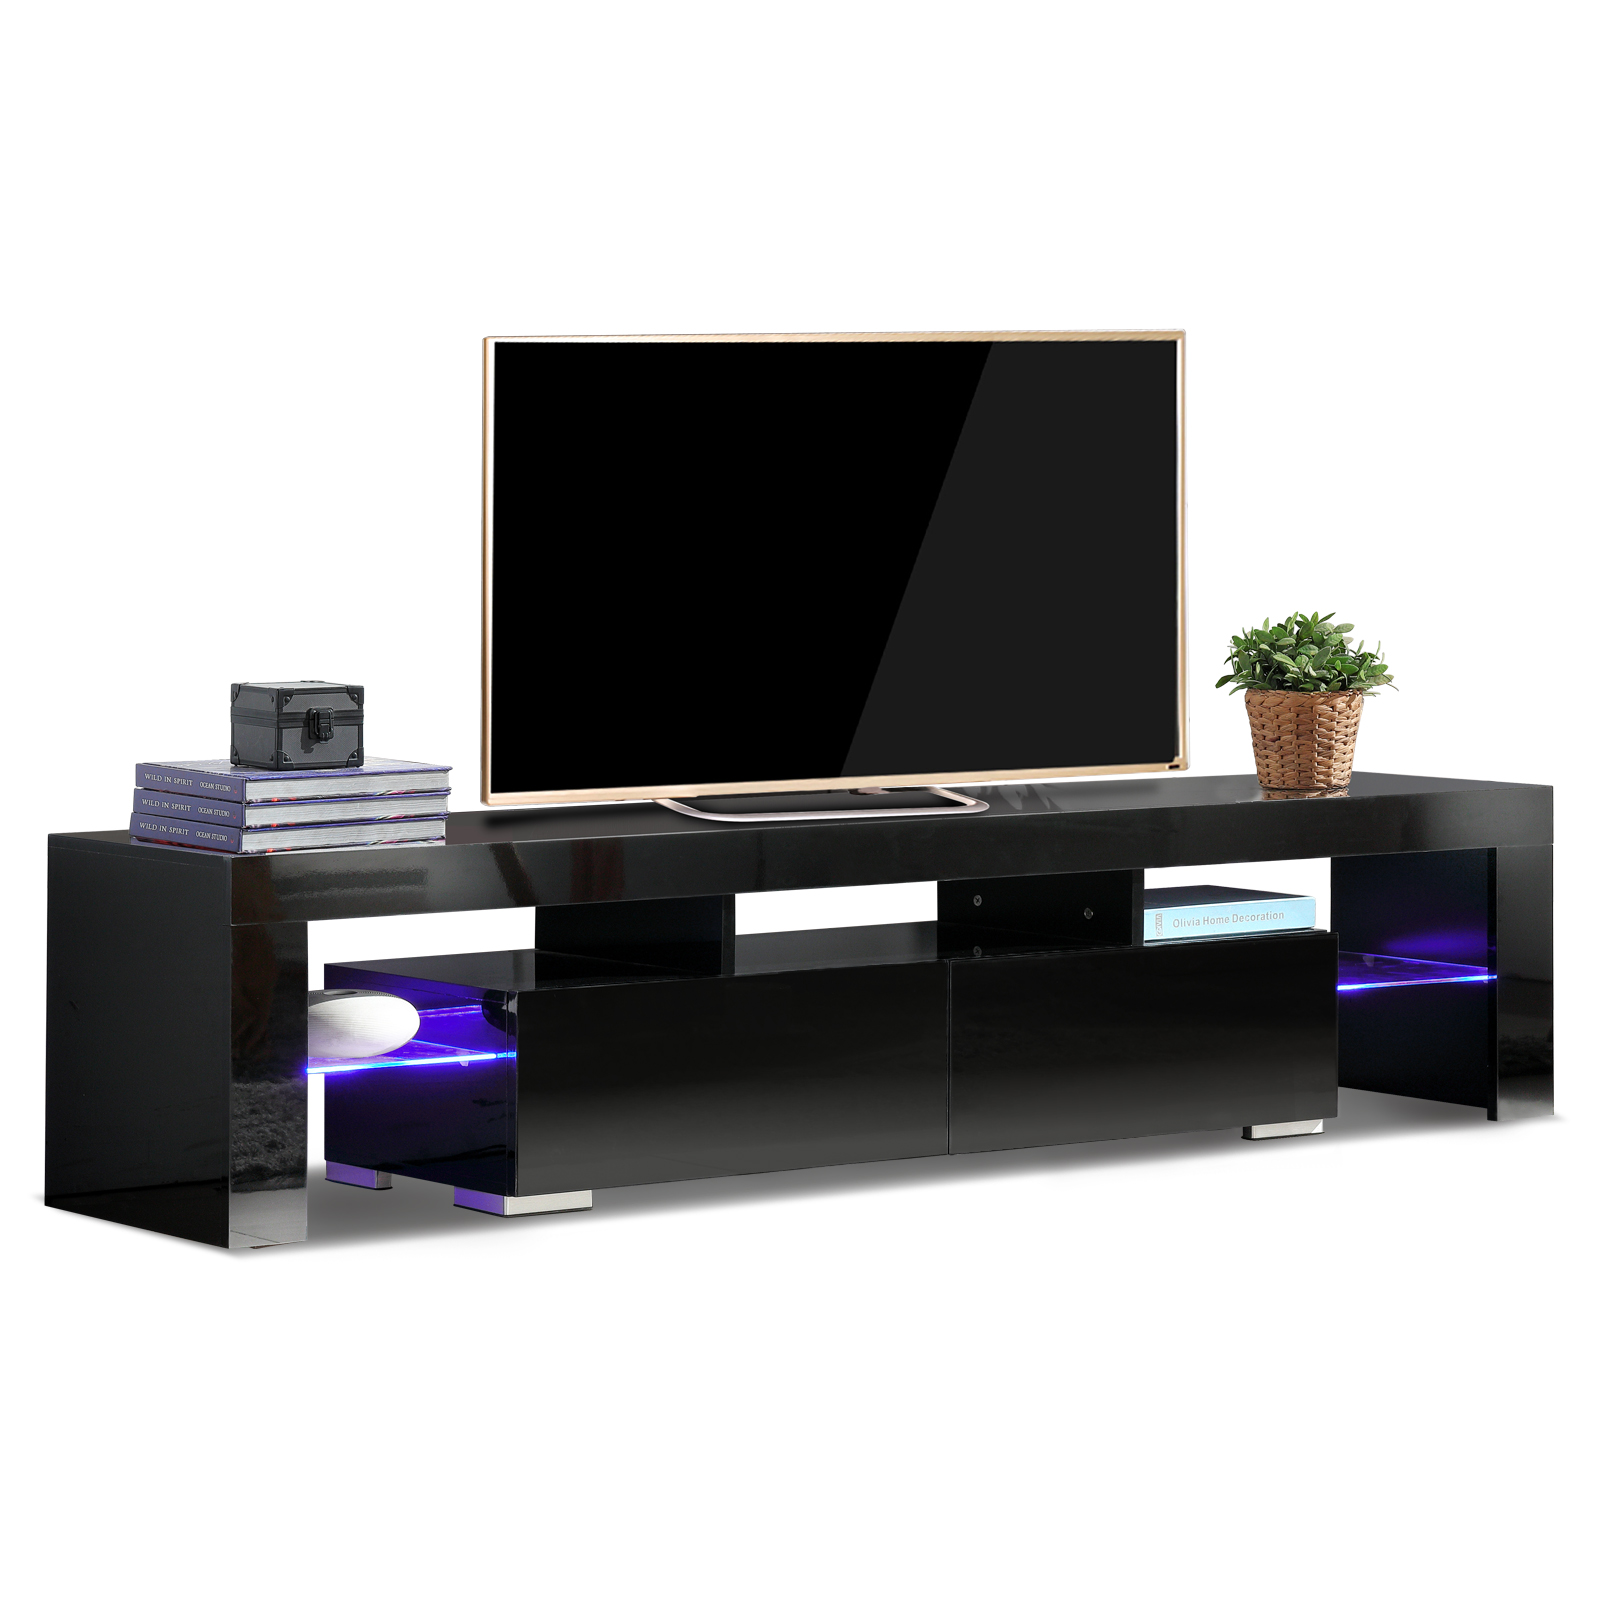 Meja Tv Lcd Details About High Gloss Black Tv Cabinet Stand With Rgb Led Light Remote Control 12 Colors